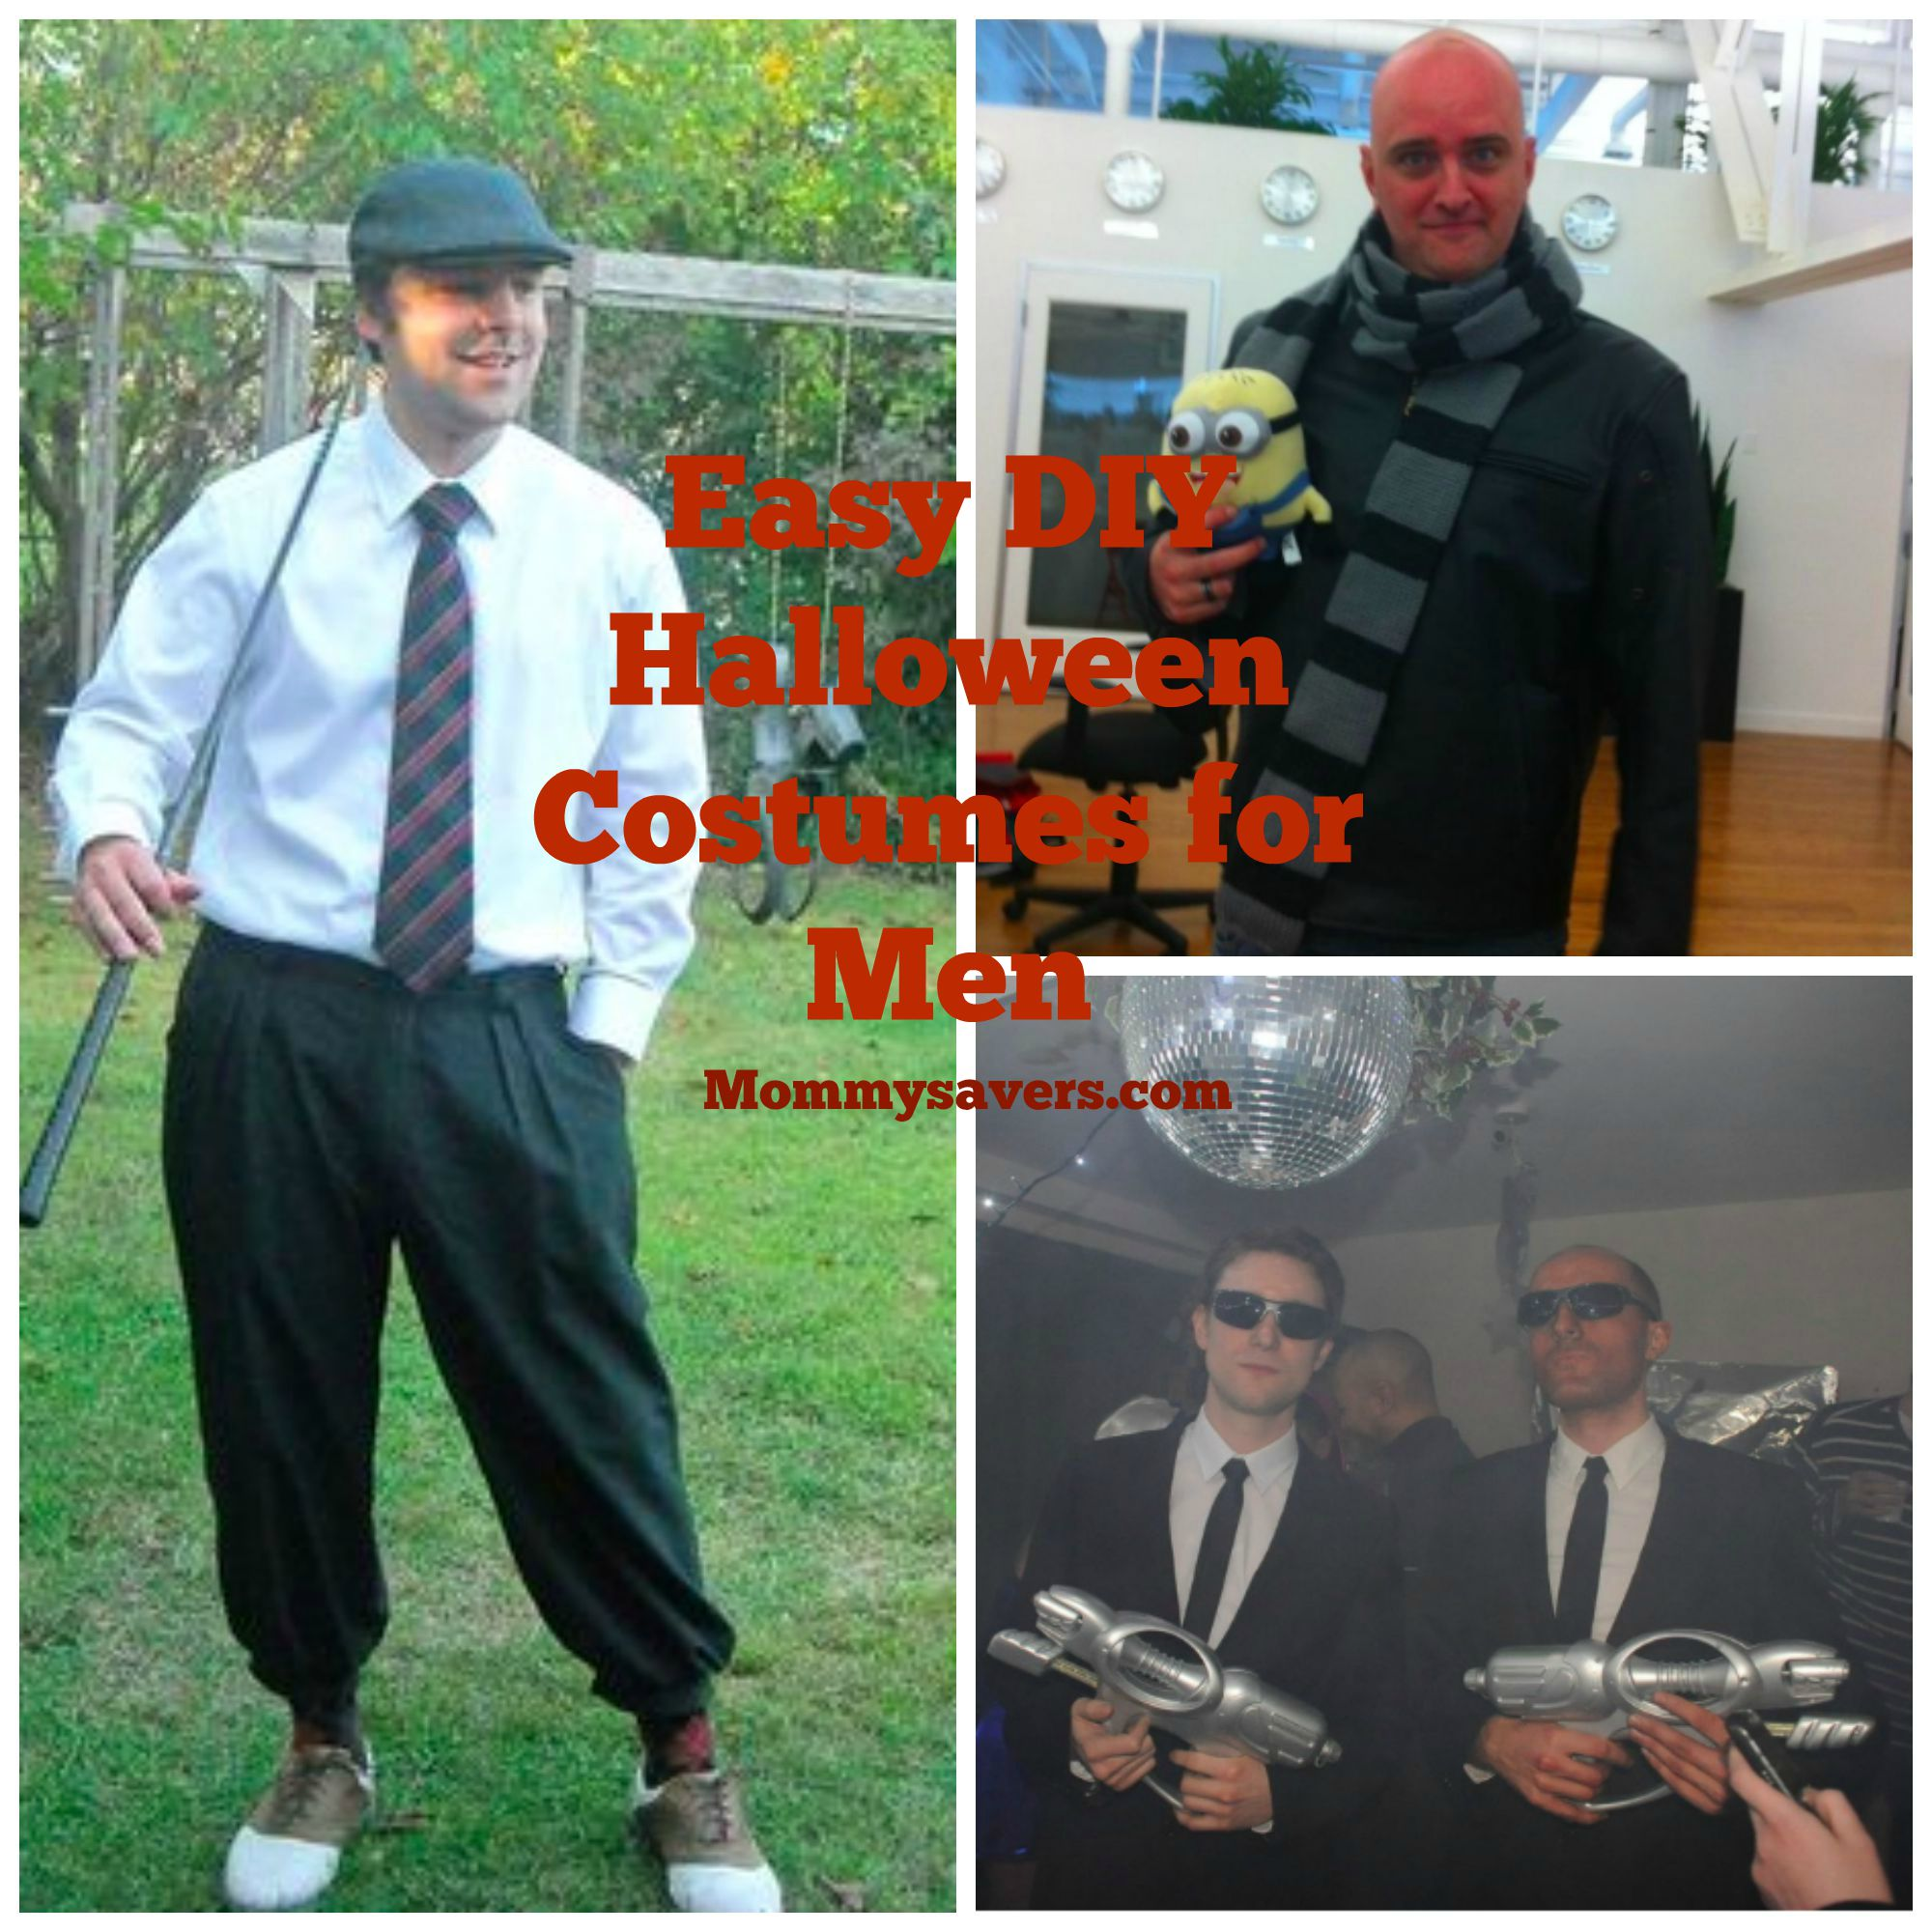 Diy easy halloween costume ideas for men mommysavers diy halloween costumes for men solutioingenieria Image collections